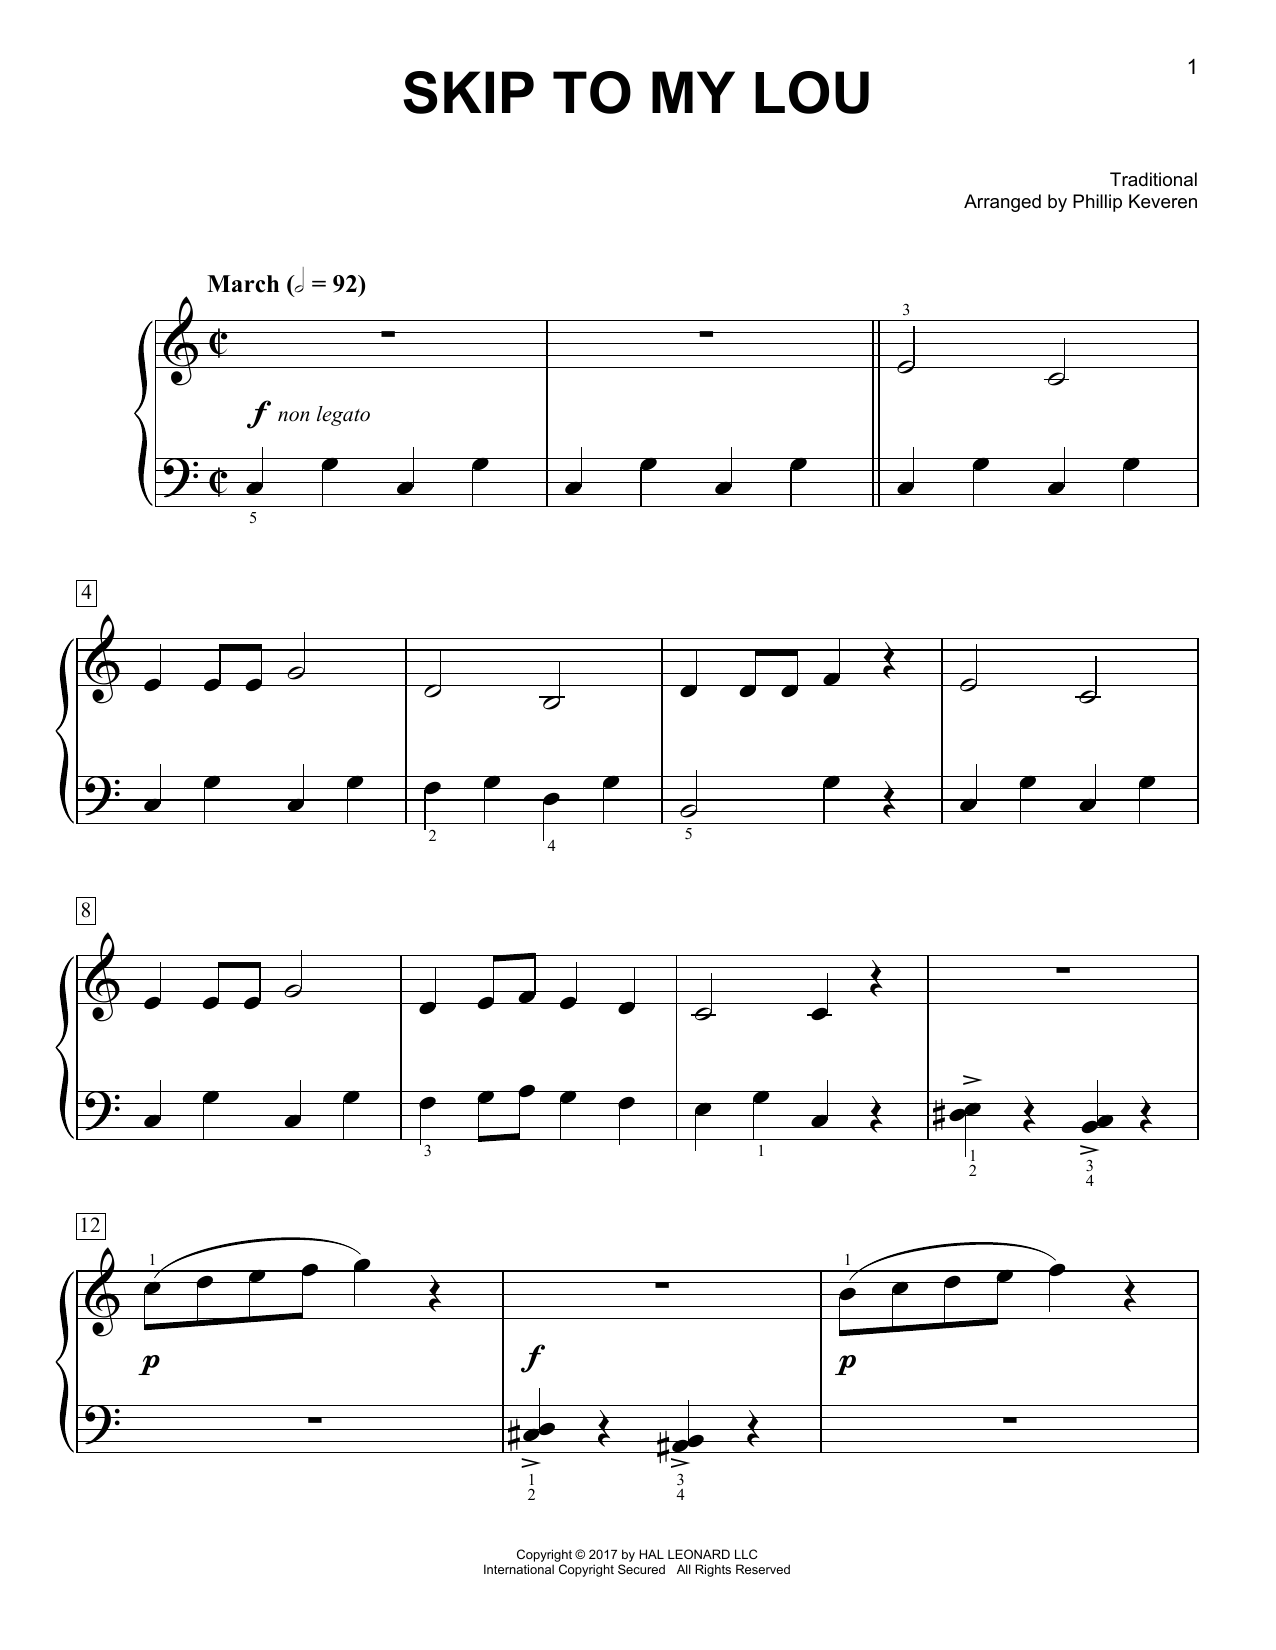 Traditional Skip To My Lou [Classical version] (arr. Phillip Keveren) sheet music notes and chords. Download Printable PDF.